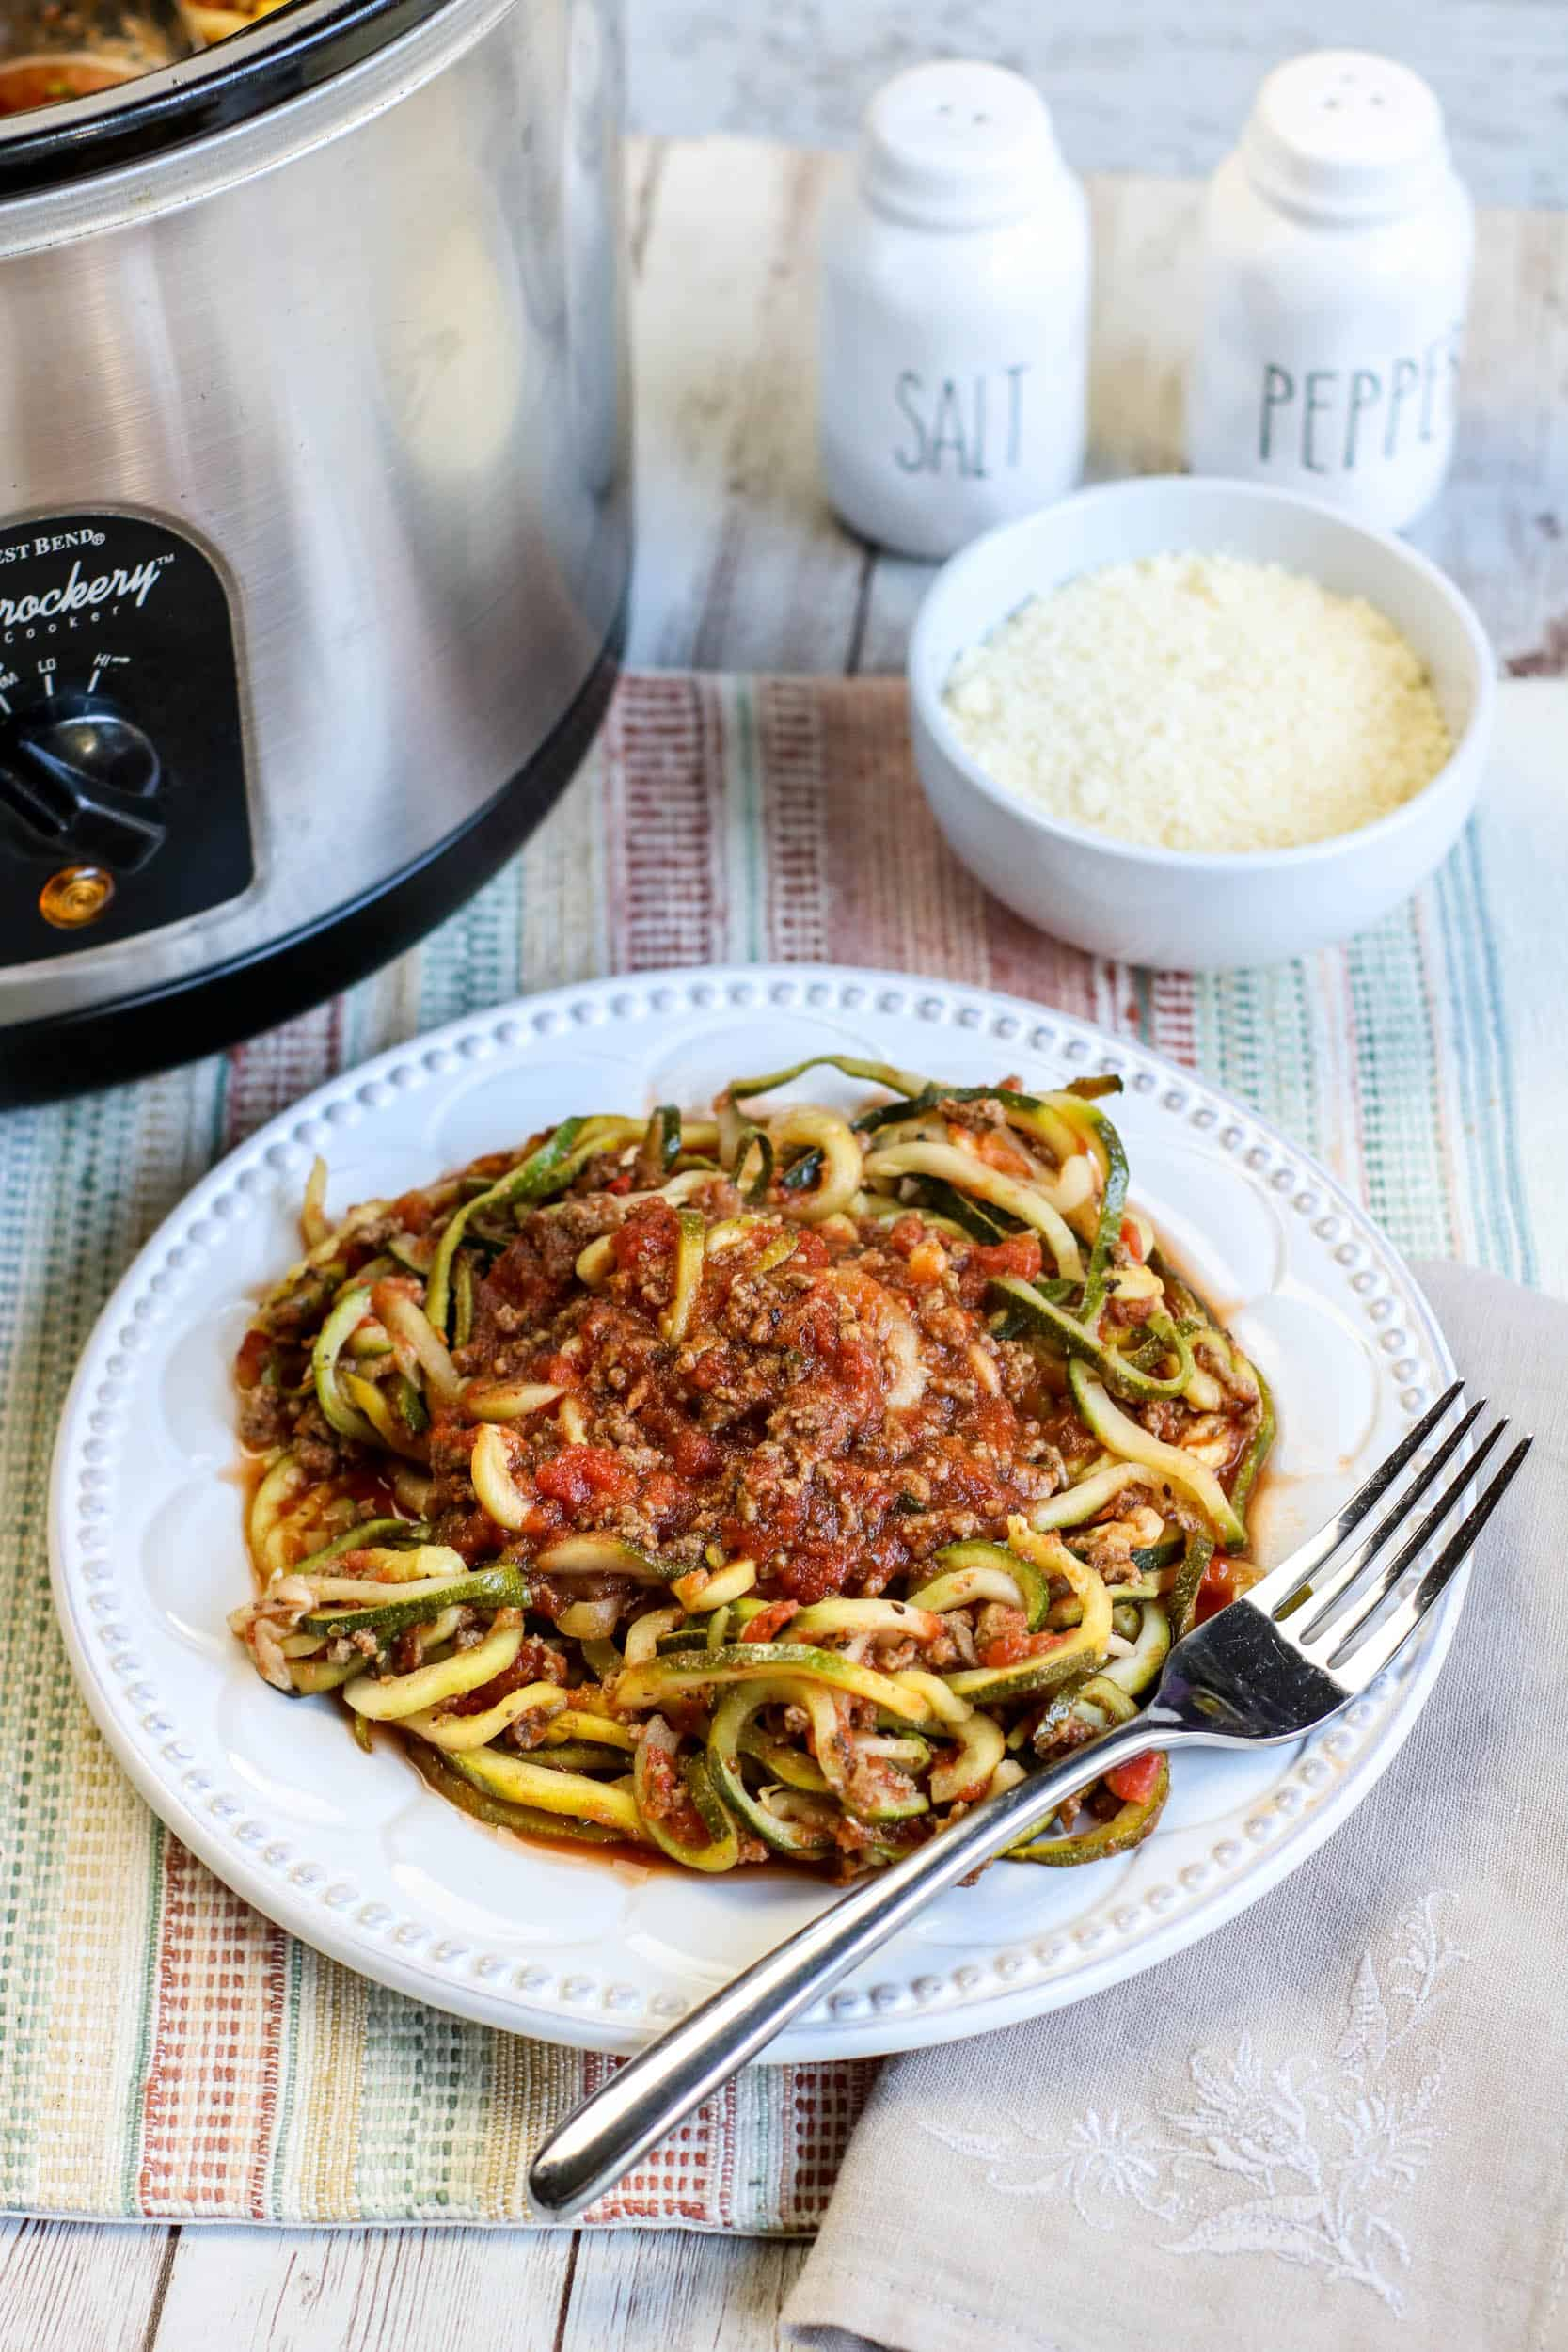 plated with slow cooker and salt and pepper shakers